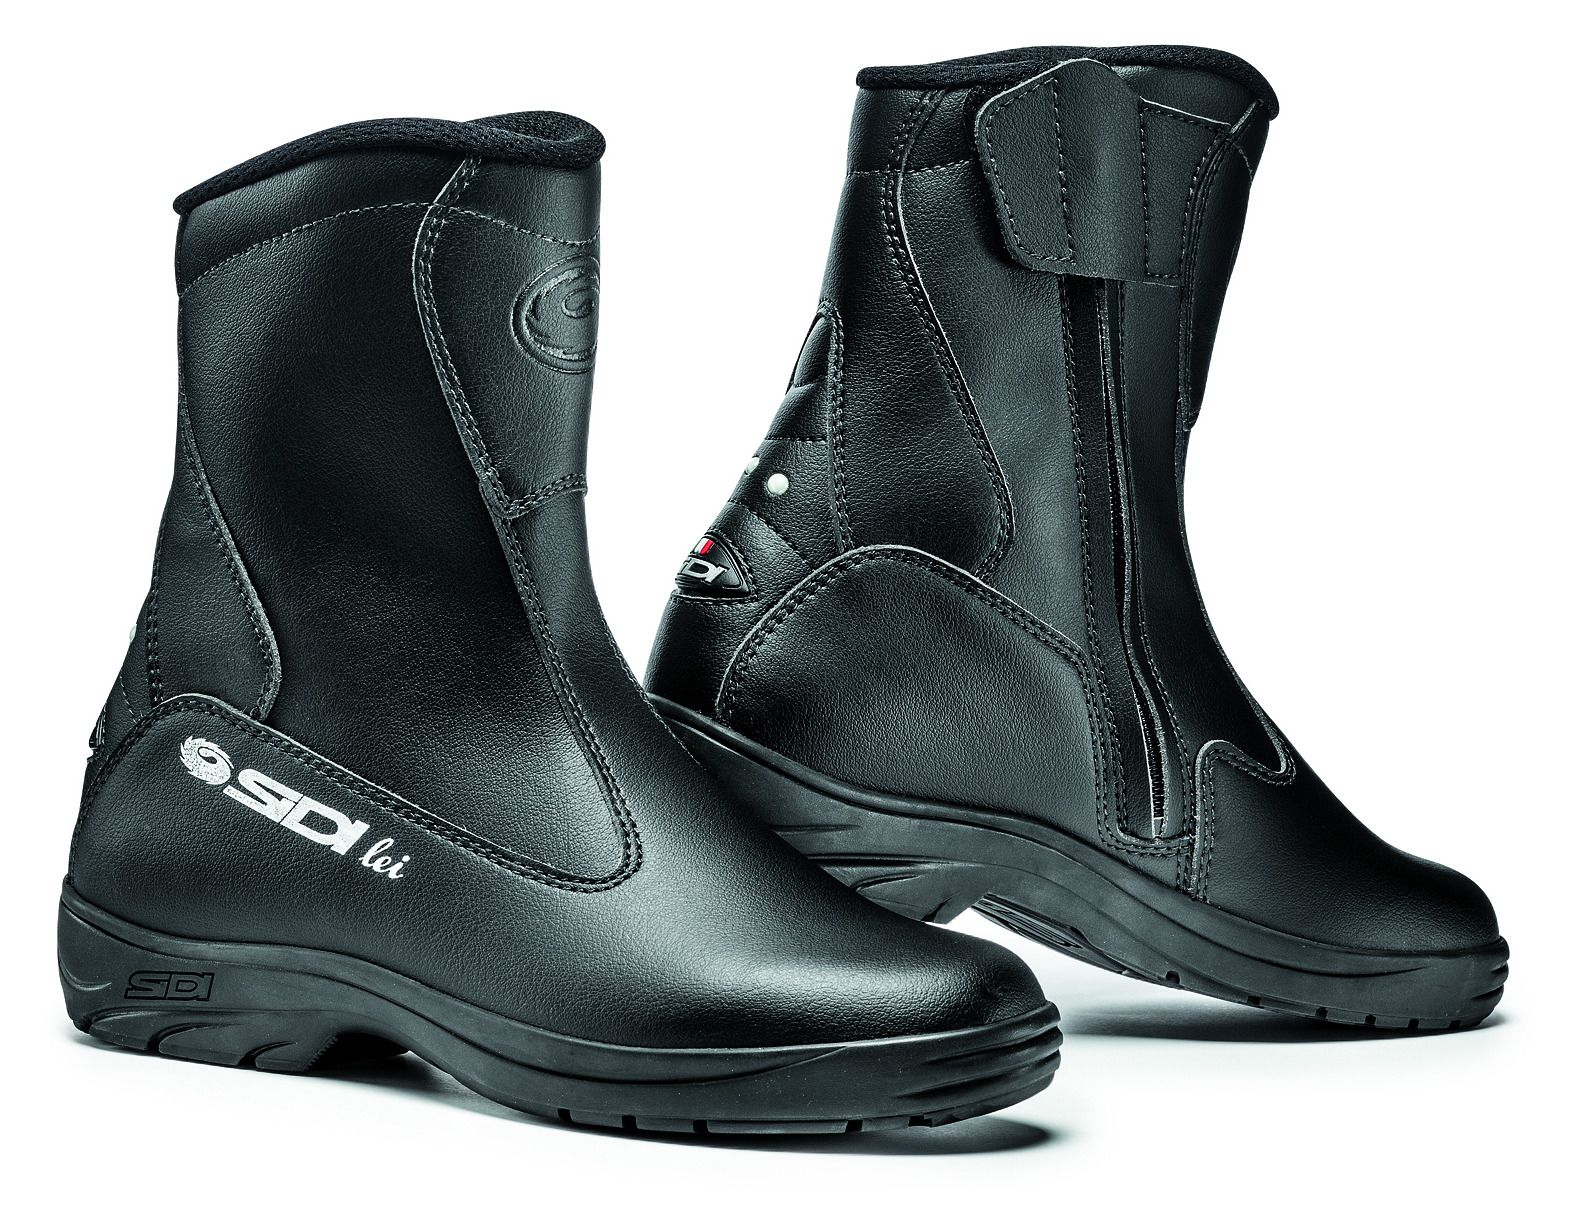 bilt motorcycle boots fashion images